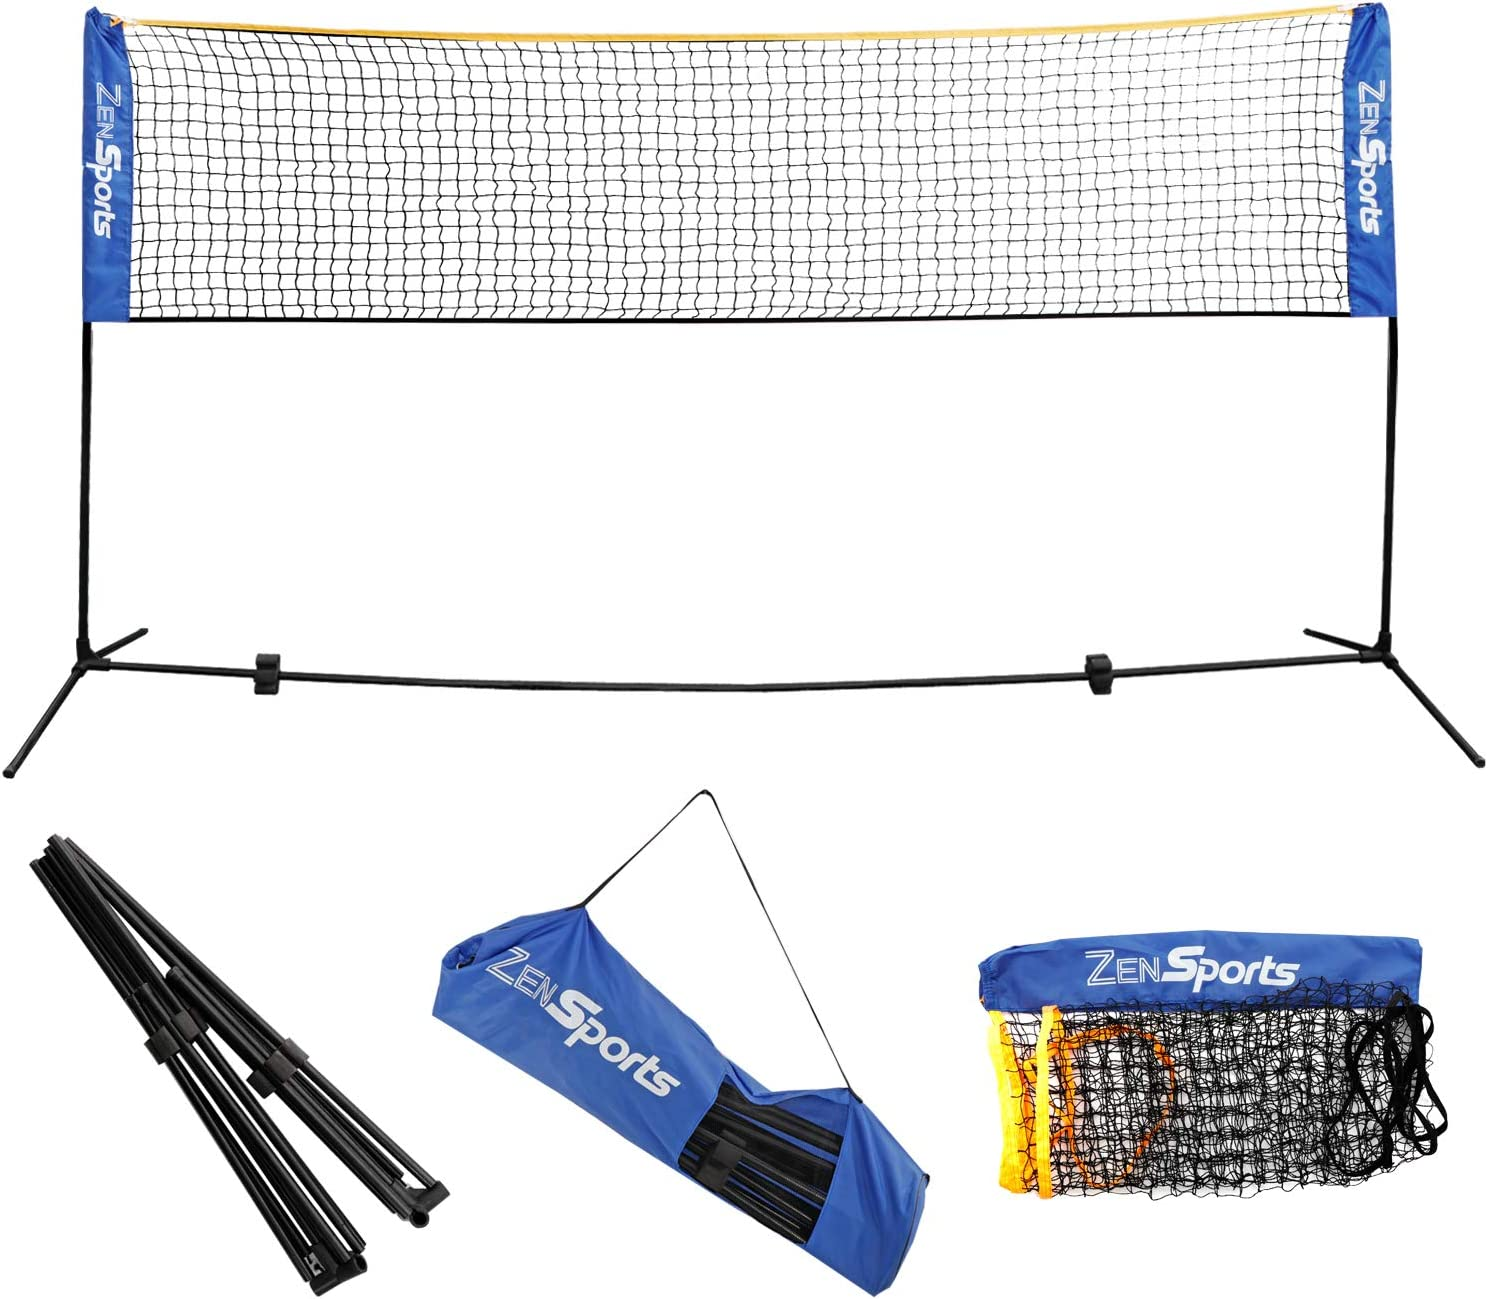 Amazon Com Zeny Portable Badminton Net Set For Soccer Tennis Pickleball Kids Volleyball Indoor Outdoor Court Backyards Beach Sports Carrying Bag Included Sports Outdoors